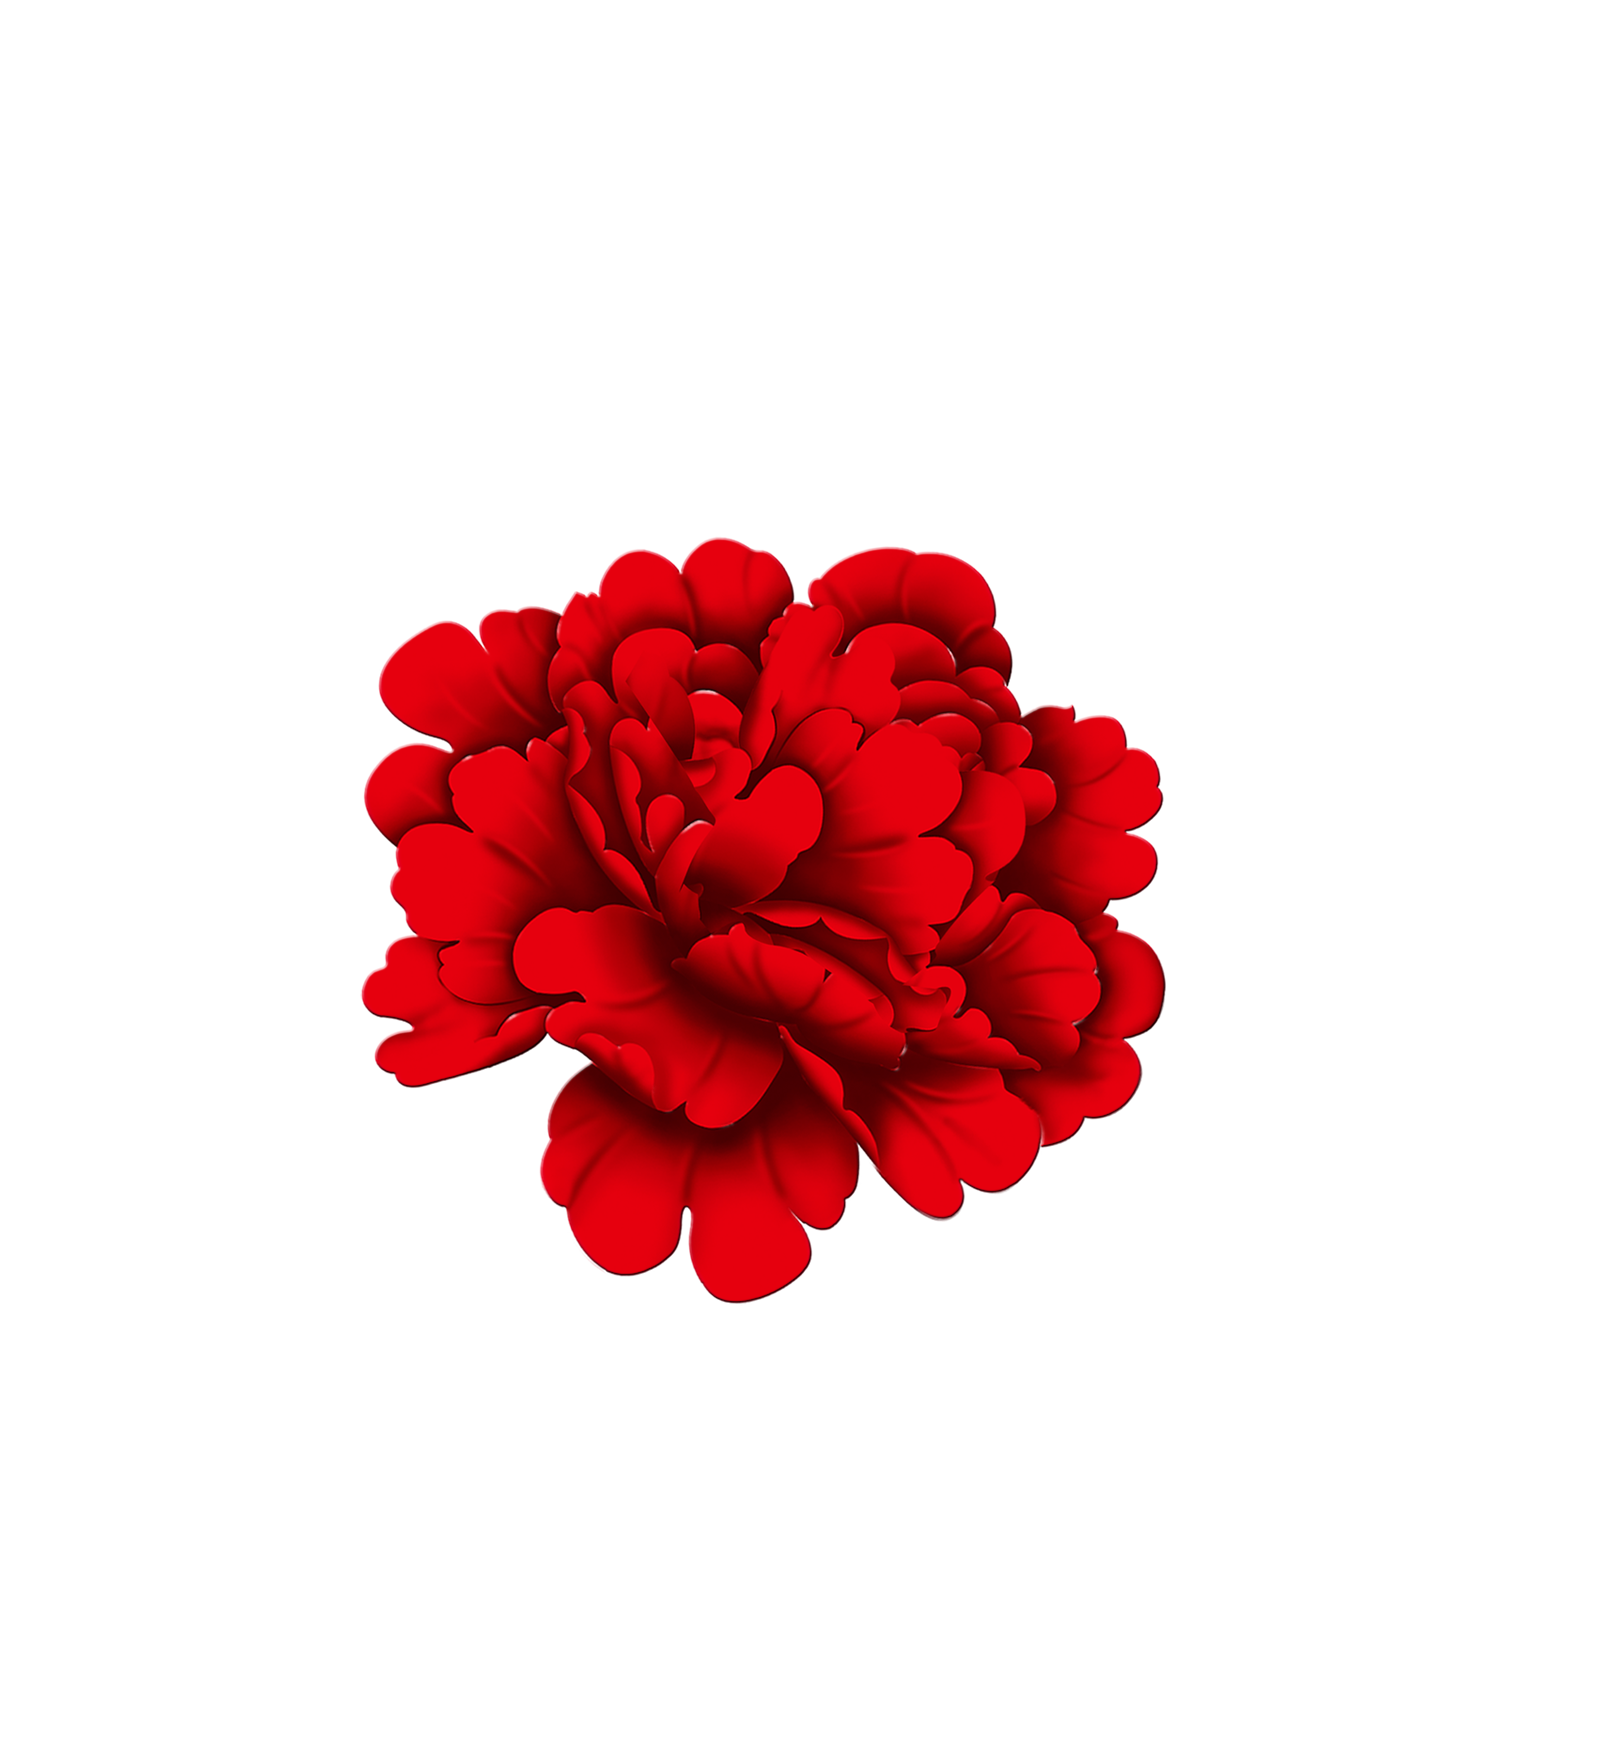 Download flower images svg free download Download - Red peony flowers 1600*1761 transprent Png Free Download ... svg free download